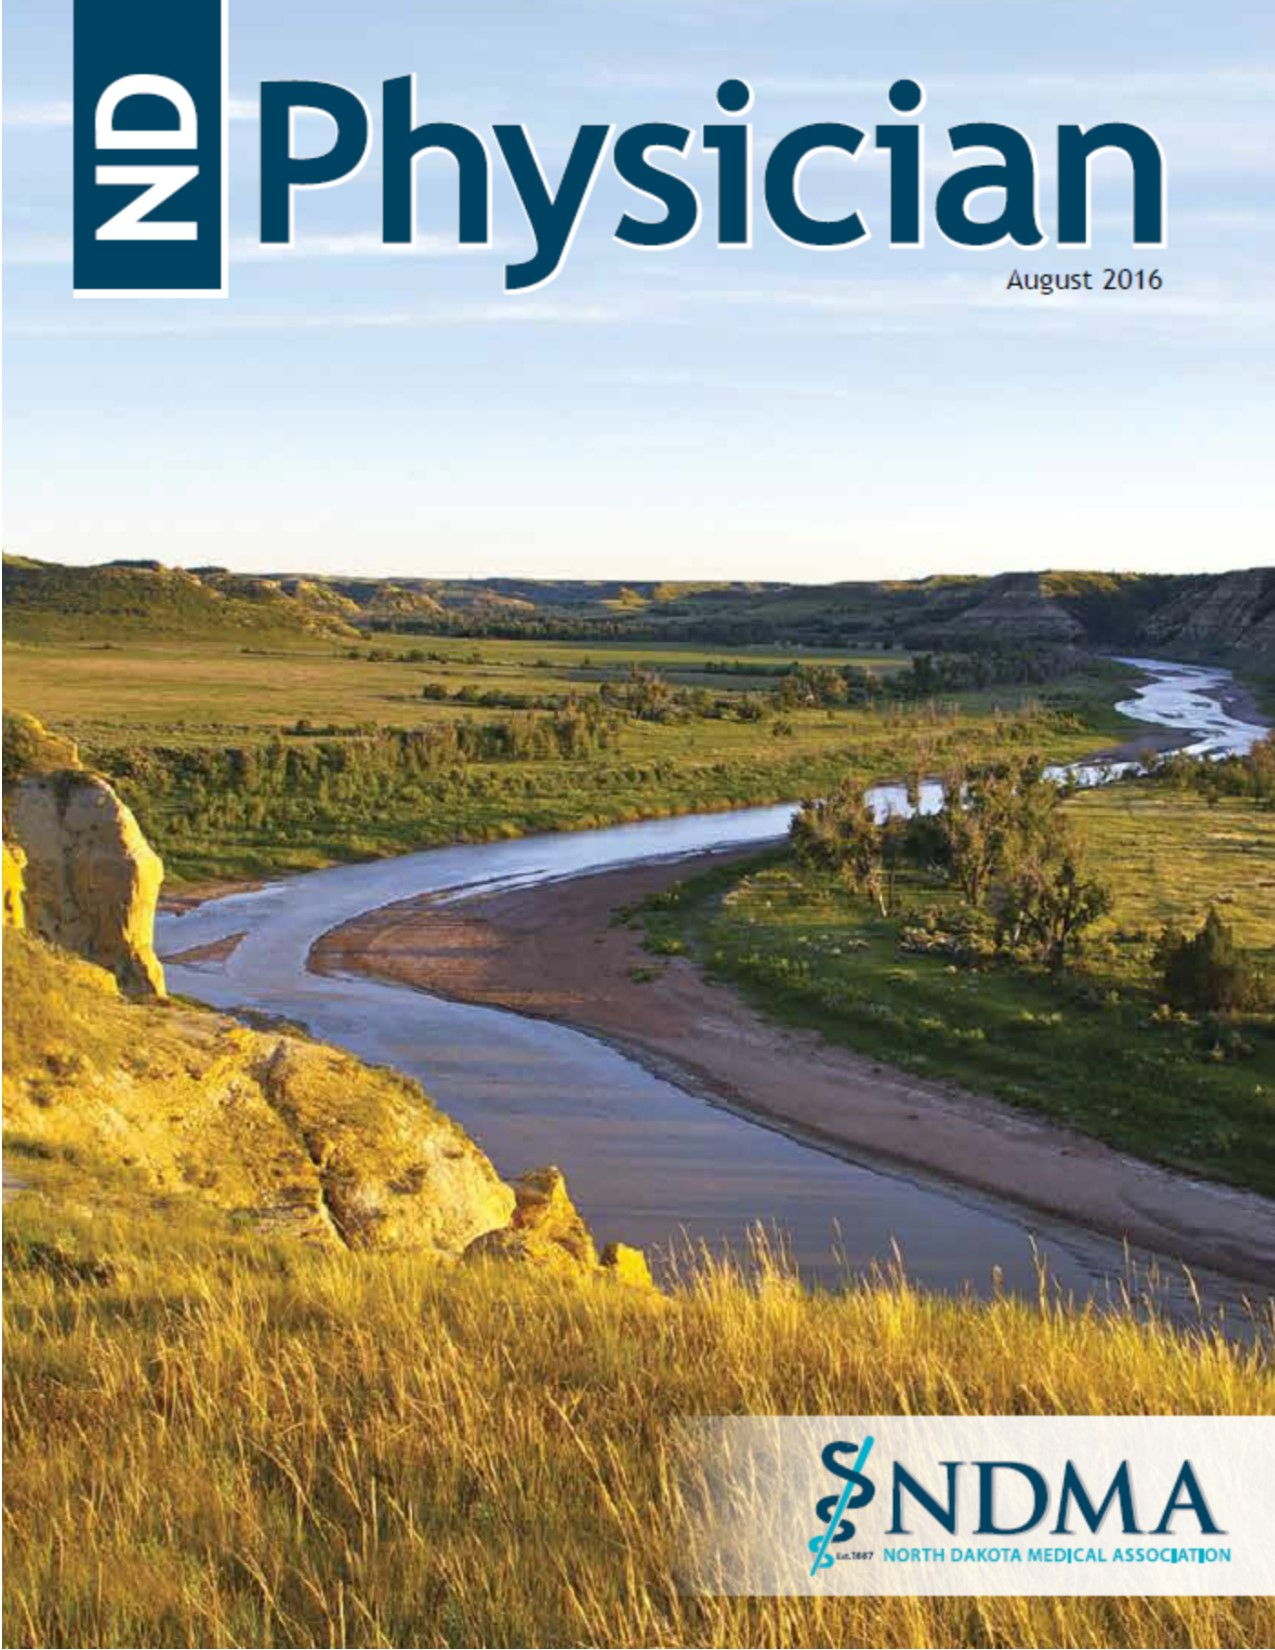 ND Physician August 2016 magazine cover